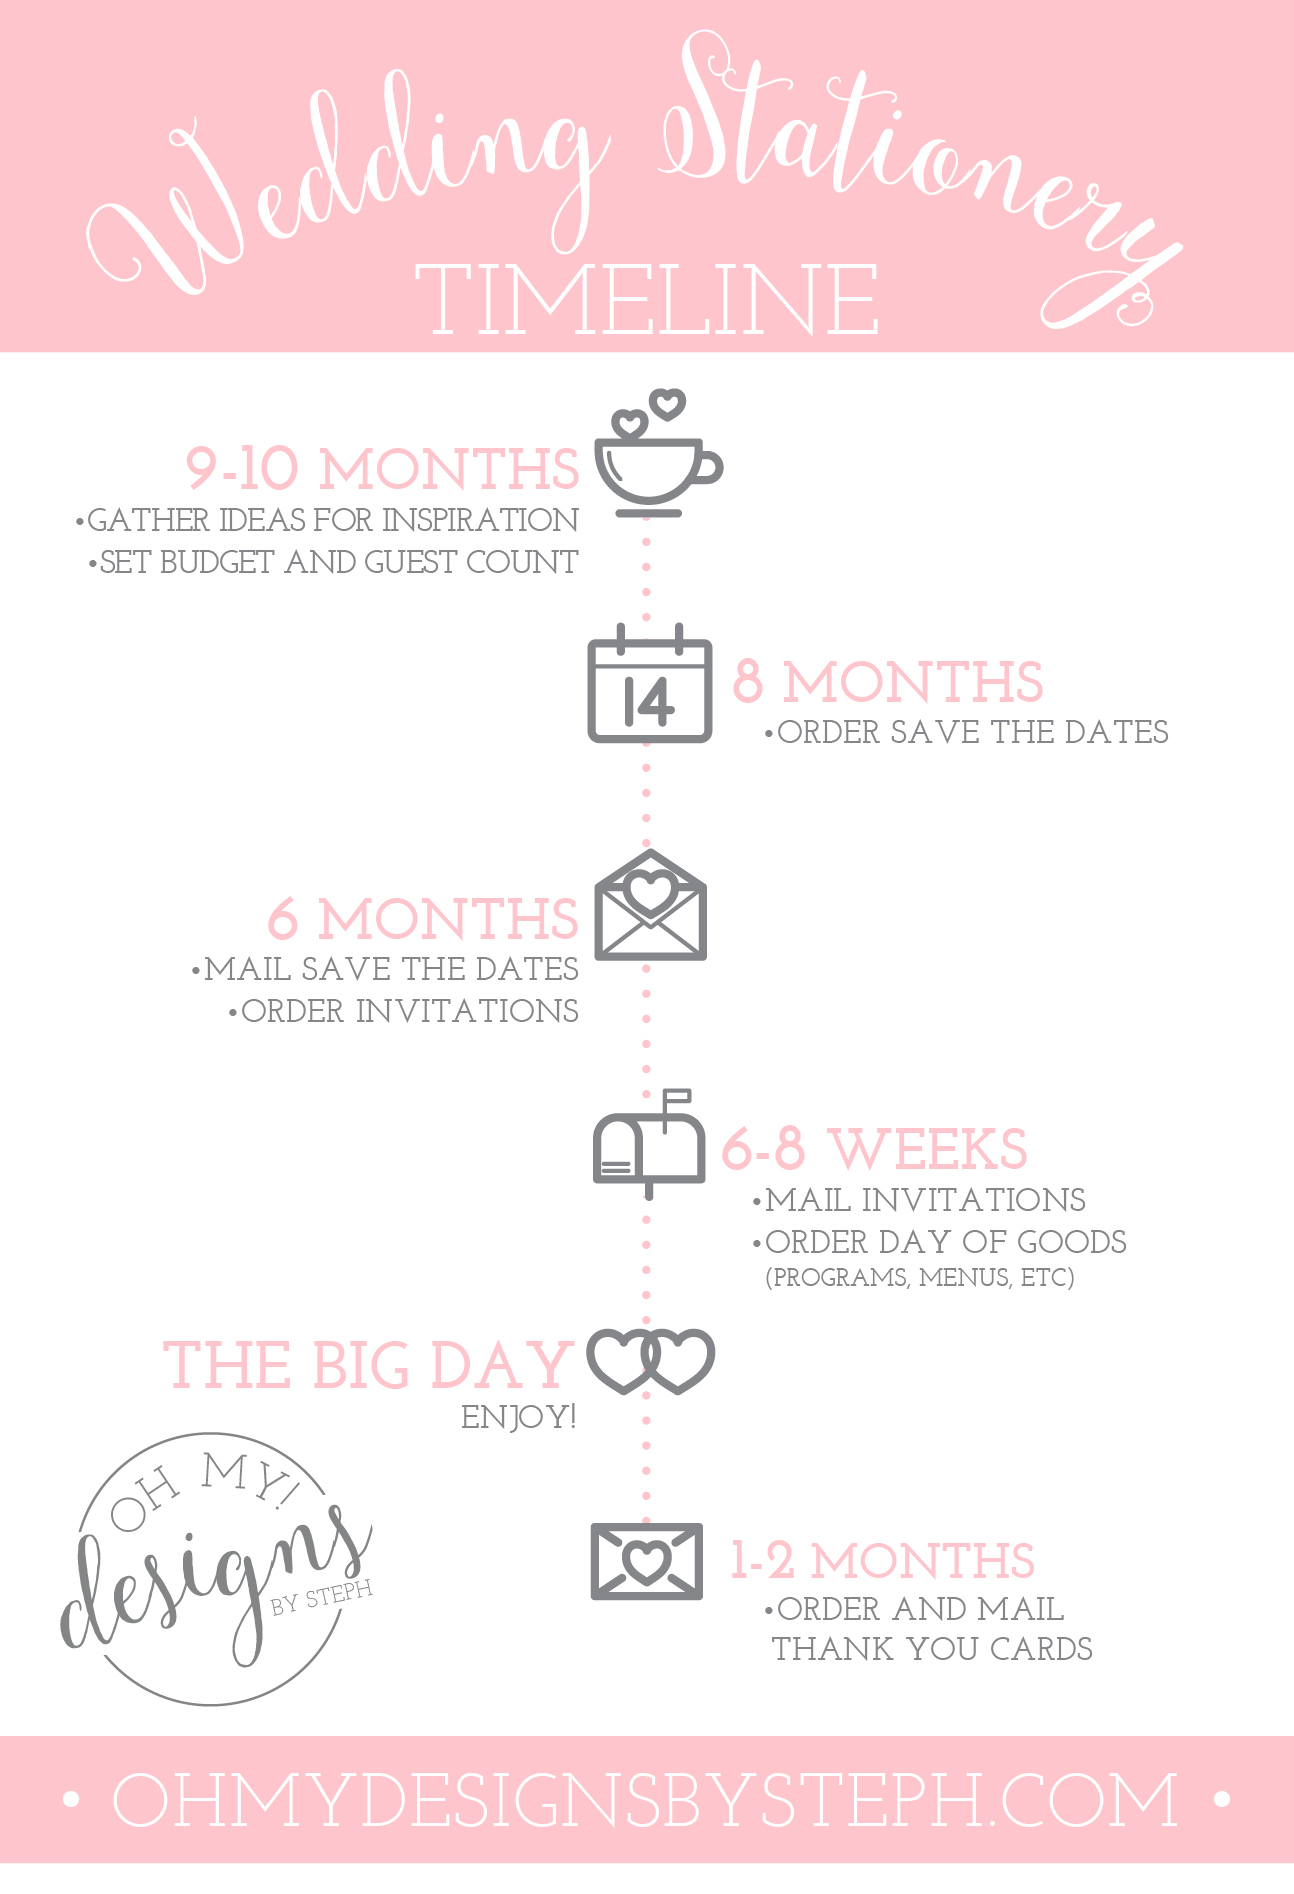 Wedding Stationery Timeline | oh my! designs by steph